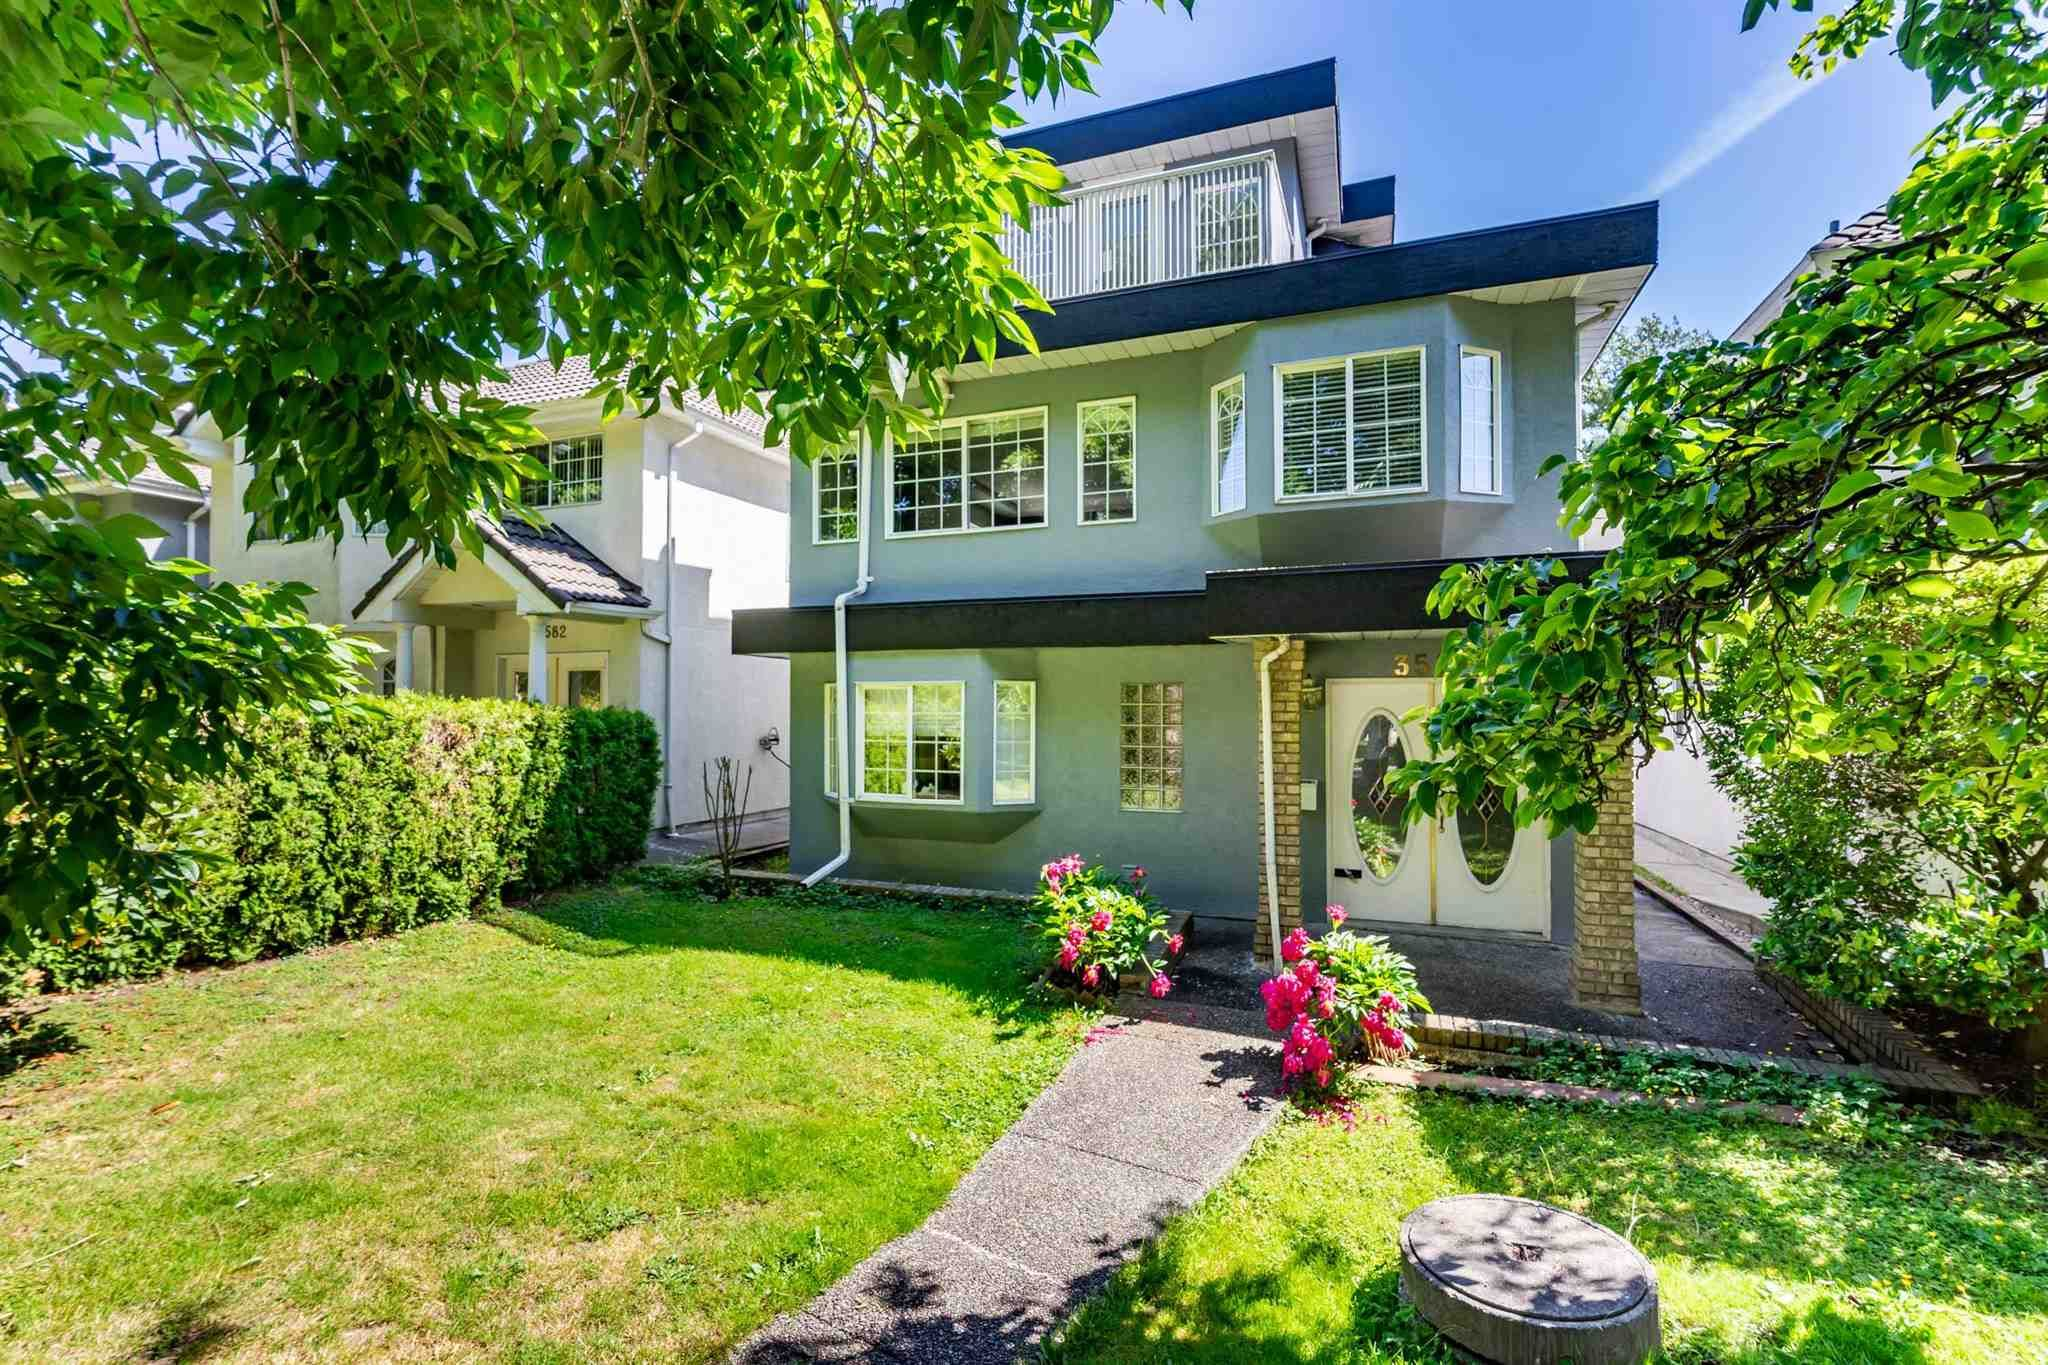 Main Photo: 3580 WILLIAM Street in Vancouver: Renfrew VE House for sale (Vancouver East)  : MLS®# R2594196